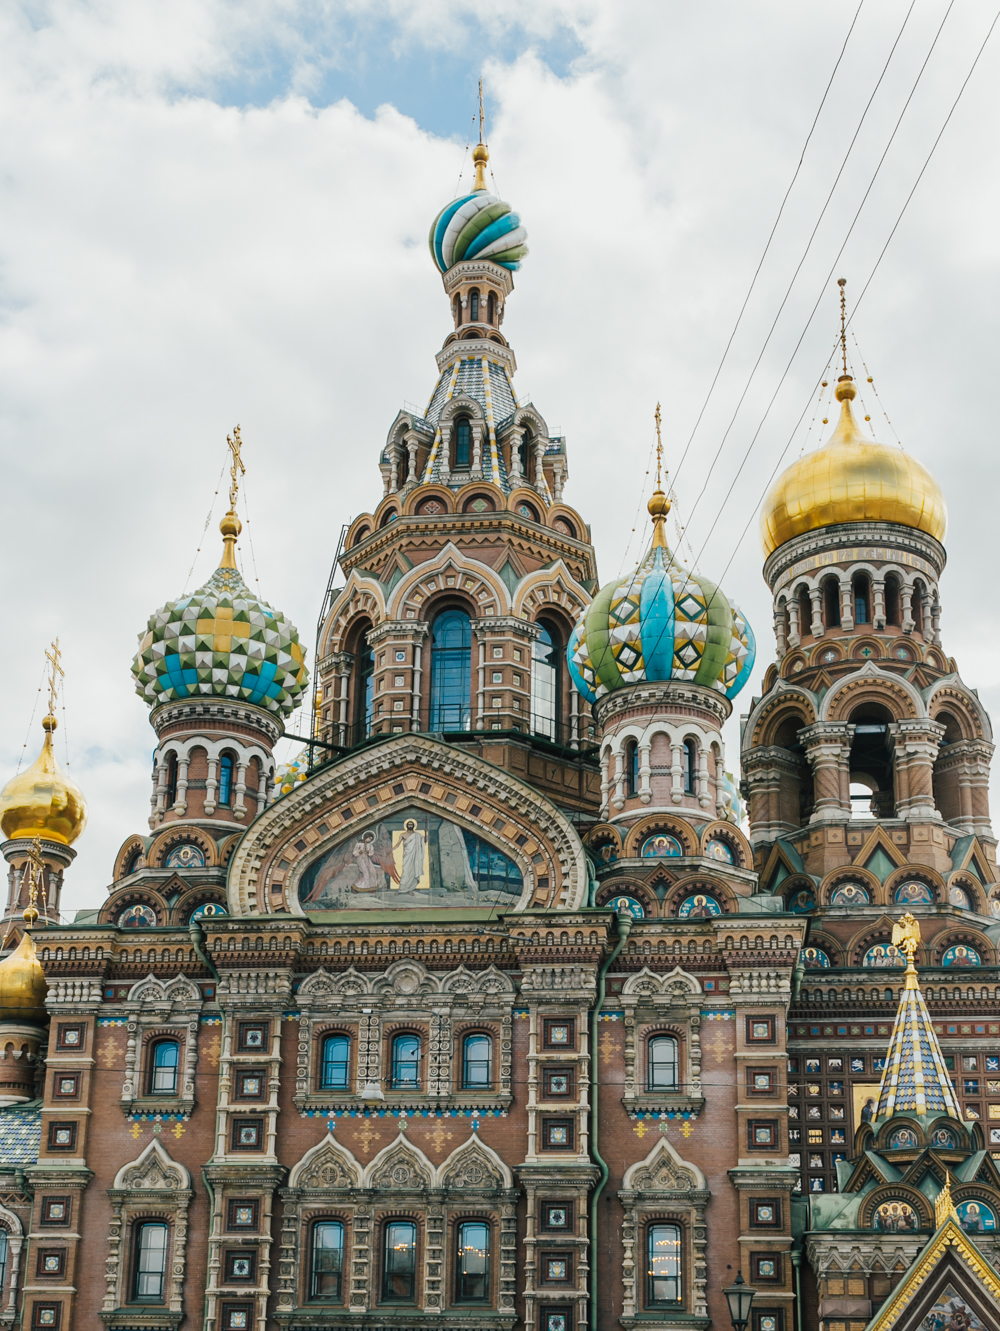 church-of-the-savior-on-spilled-blood-saint-petersburg-russia-city-guide-livvyland-blog-olivia-watson-austin-texas-travel-fashion-blog-blogger-princess-cruises-scandinavia-baltic-sea-1